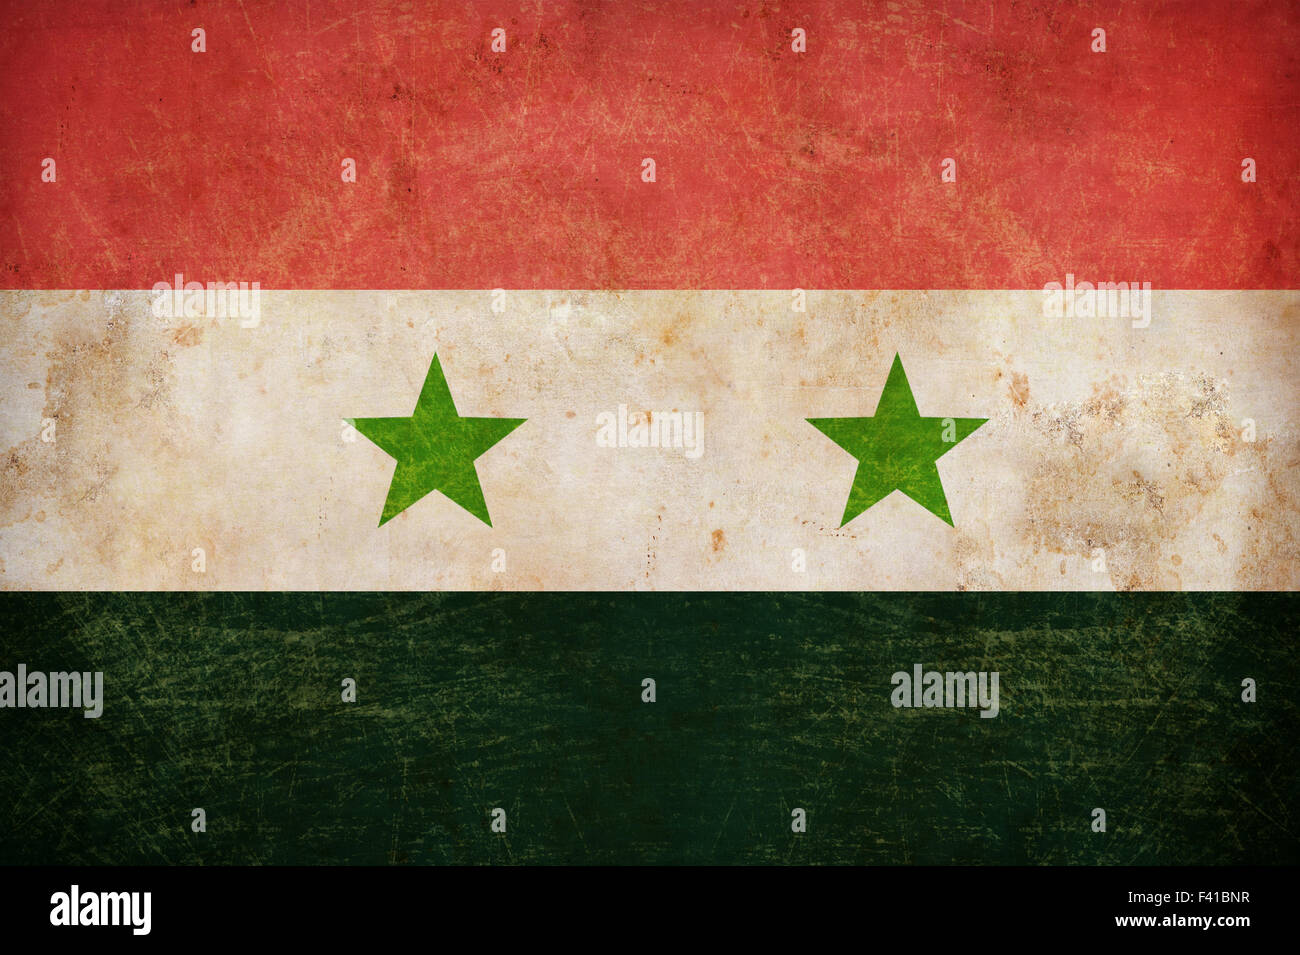 Syria flag on grunge old paper background Stock Photo